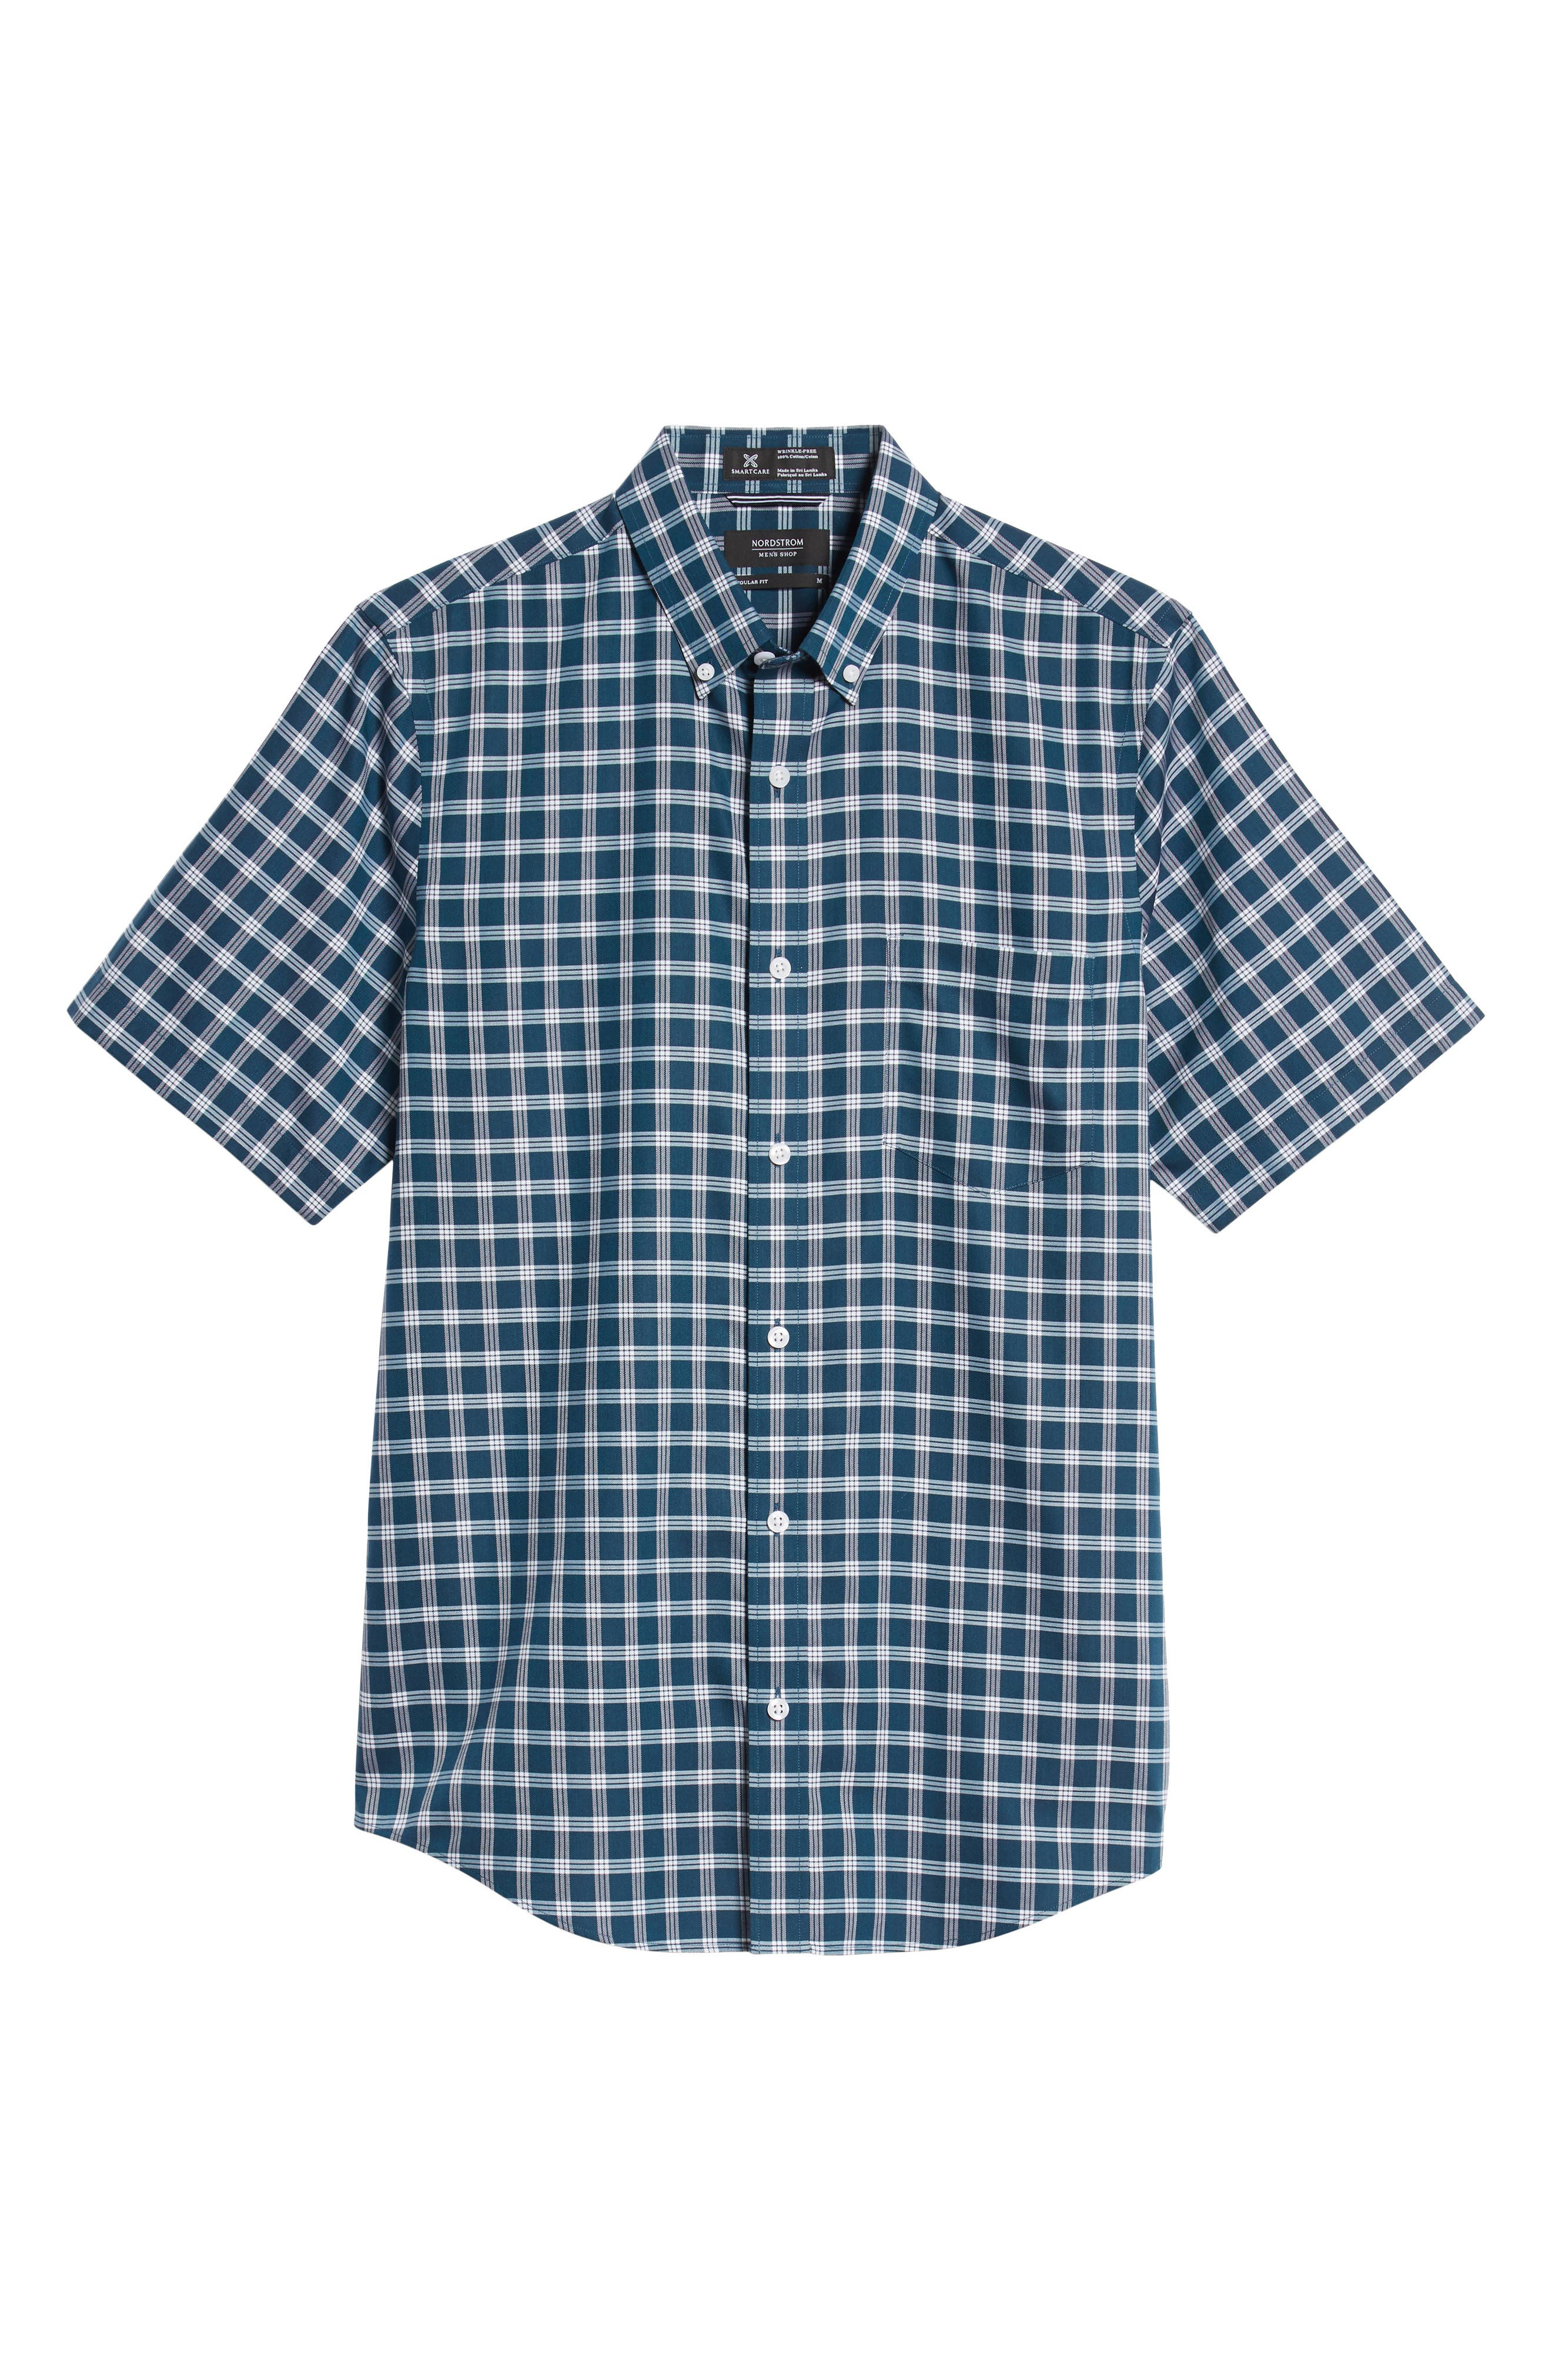 Smartcare<sup>™</sup> Slim Fit Check Sport Shirt,                             Alternate thumbnail 5, color,                             TEAL GLOSS WHITE CHECK